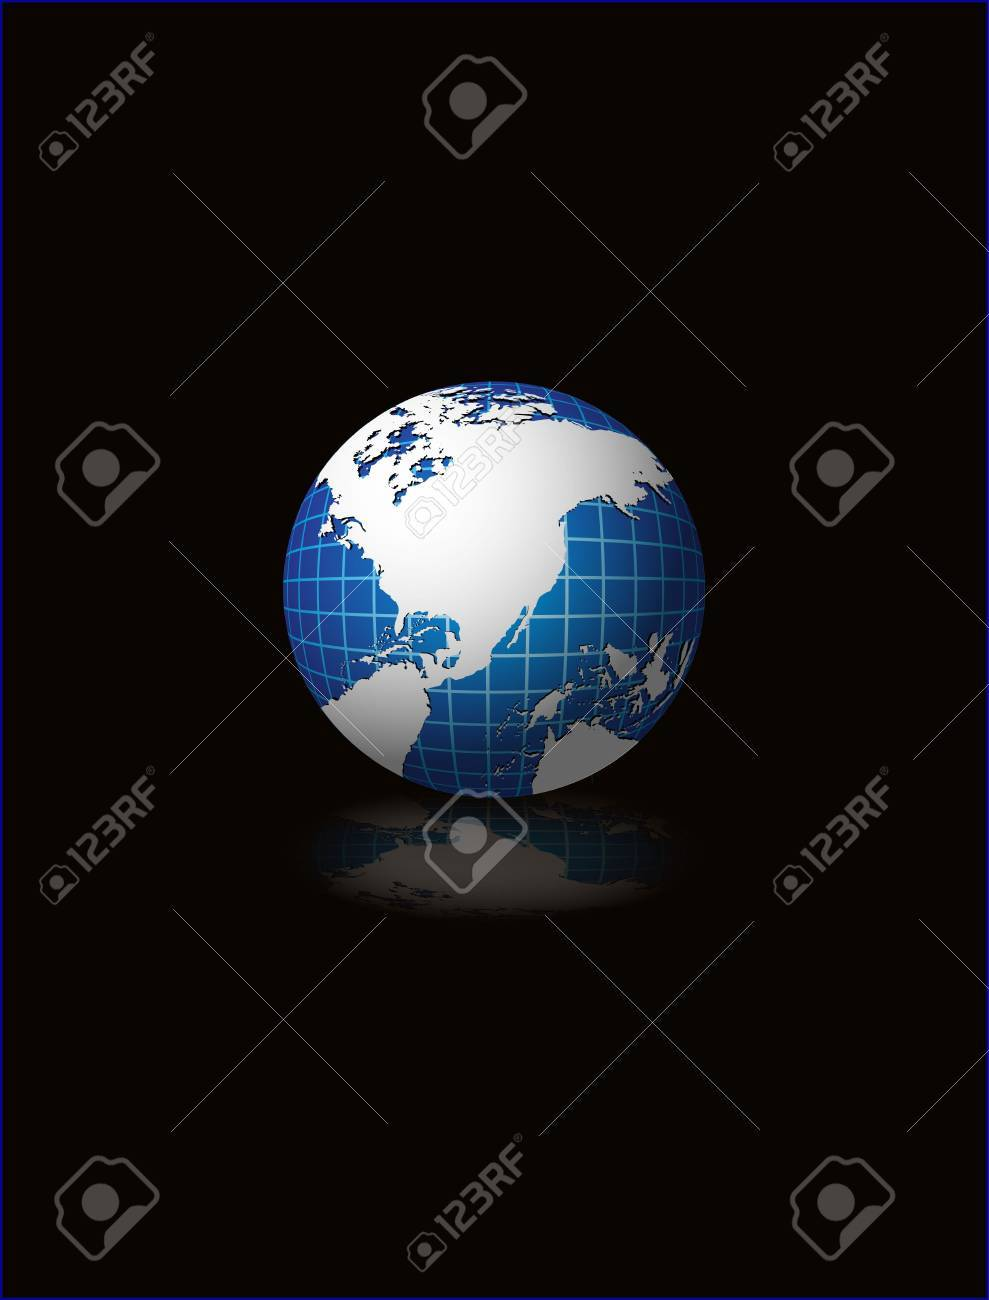 Globe vecter illustration on black abstract background Stock Illustration - 2202068